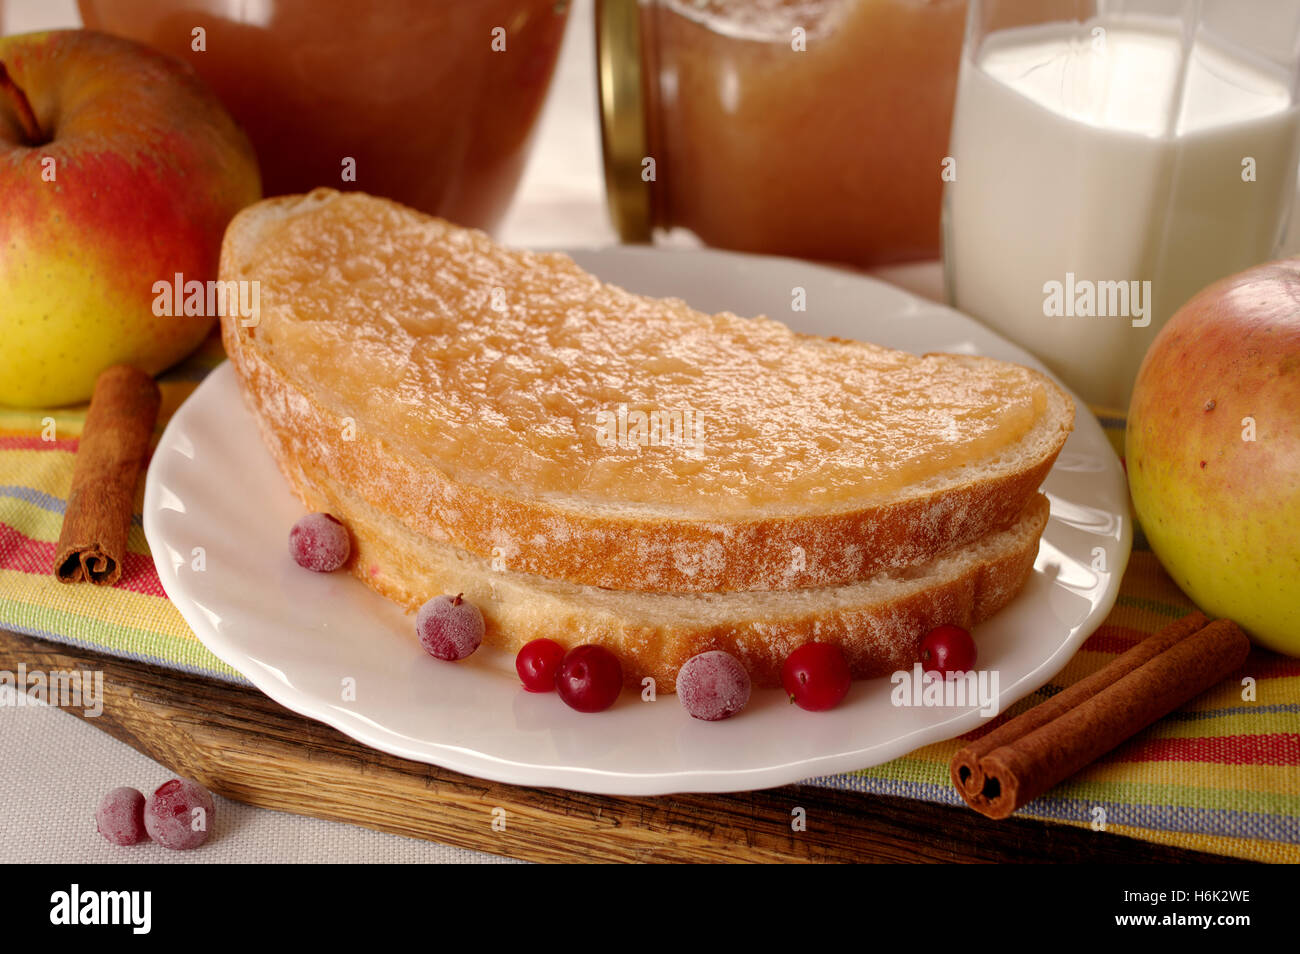 Bread with home made apple jam. - Stock Image